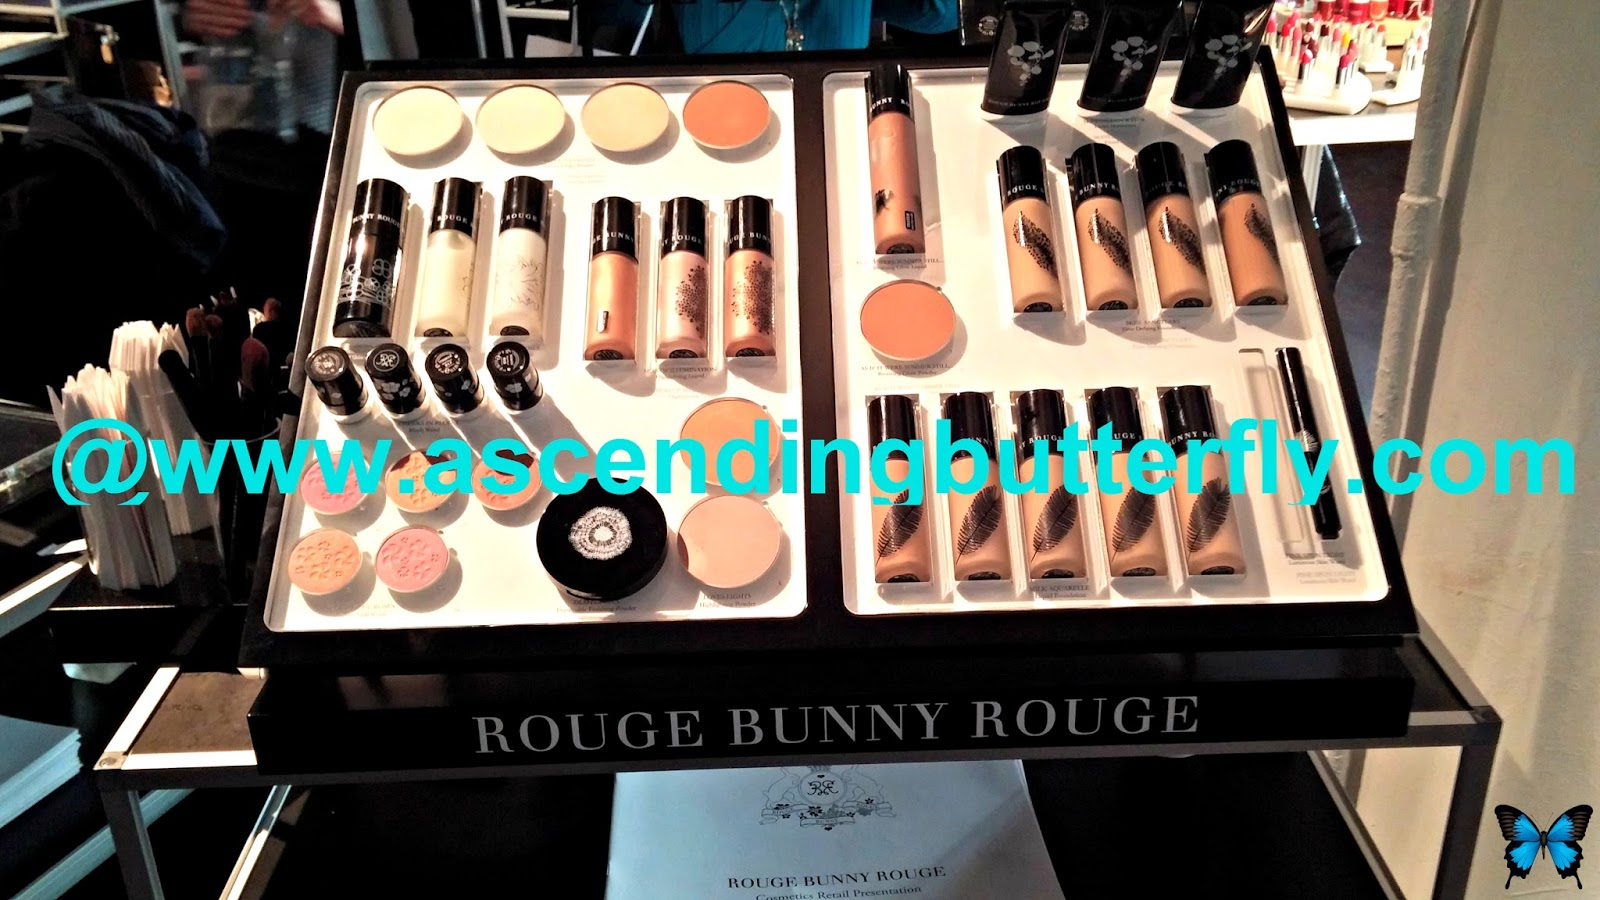 Rouge Bunny Rouge Make-Up, Skincare, Fragrances